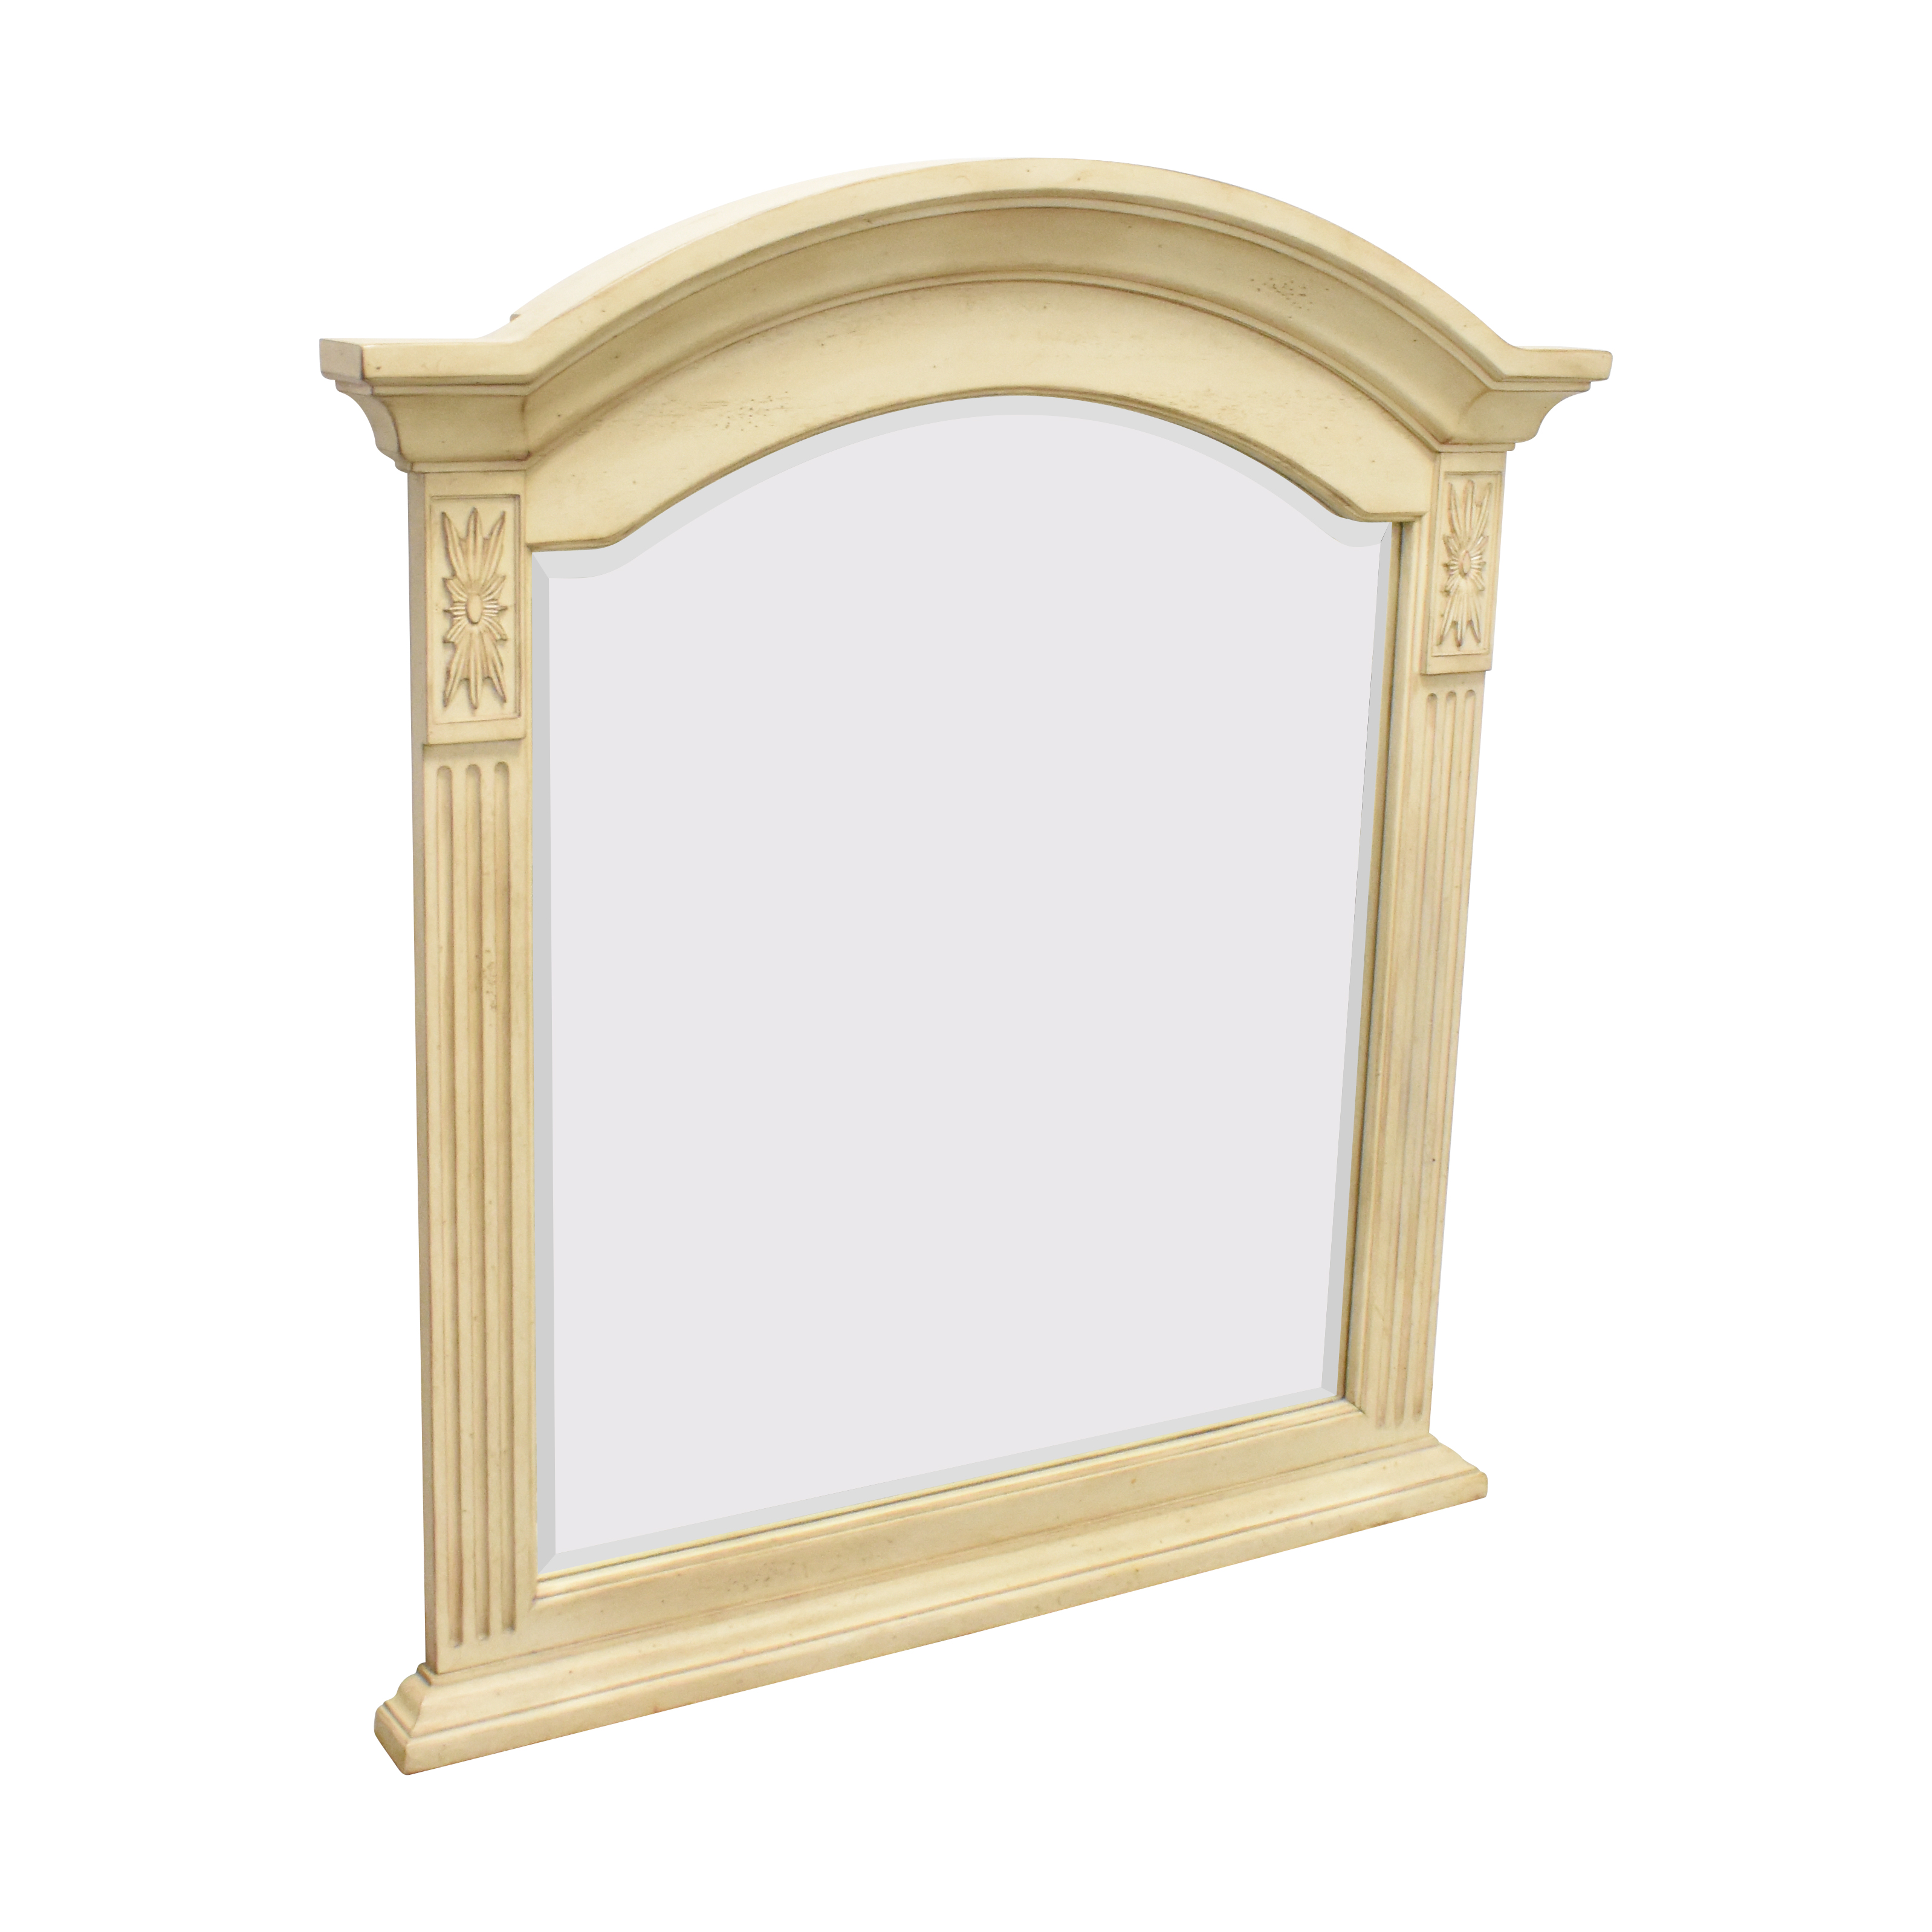 Domain Home Domain Home Framed Wall Mirror Decor